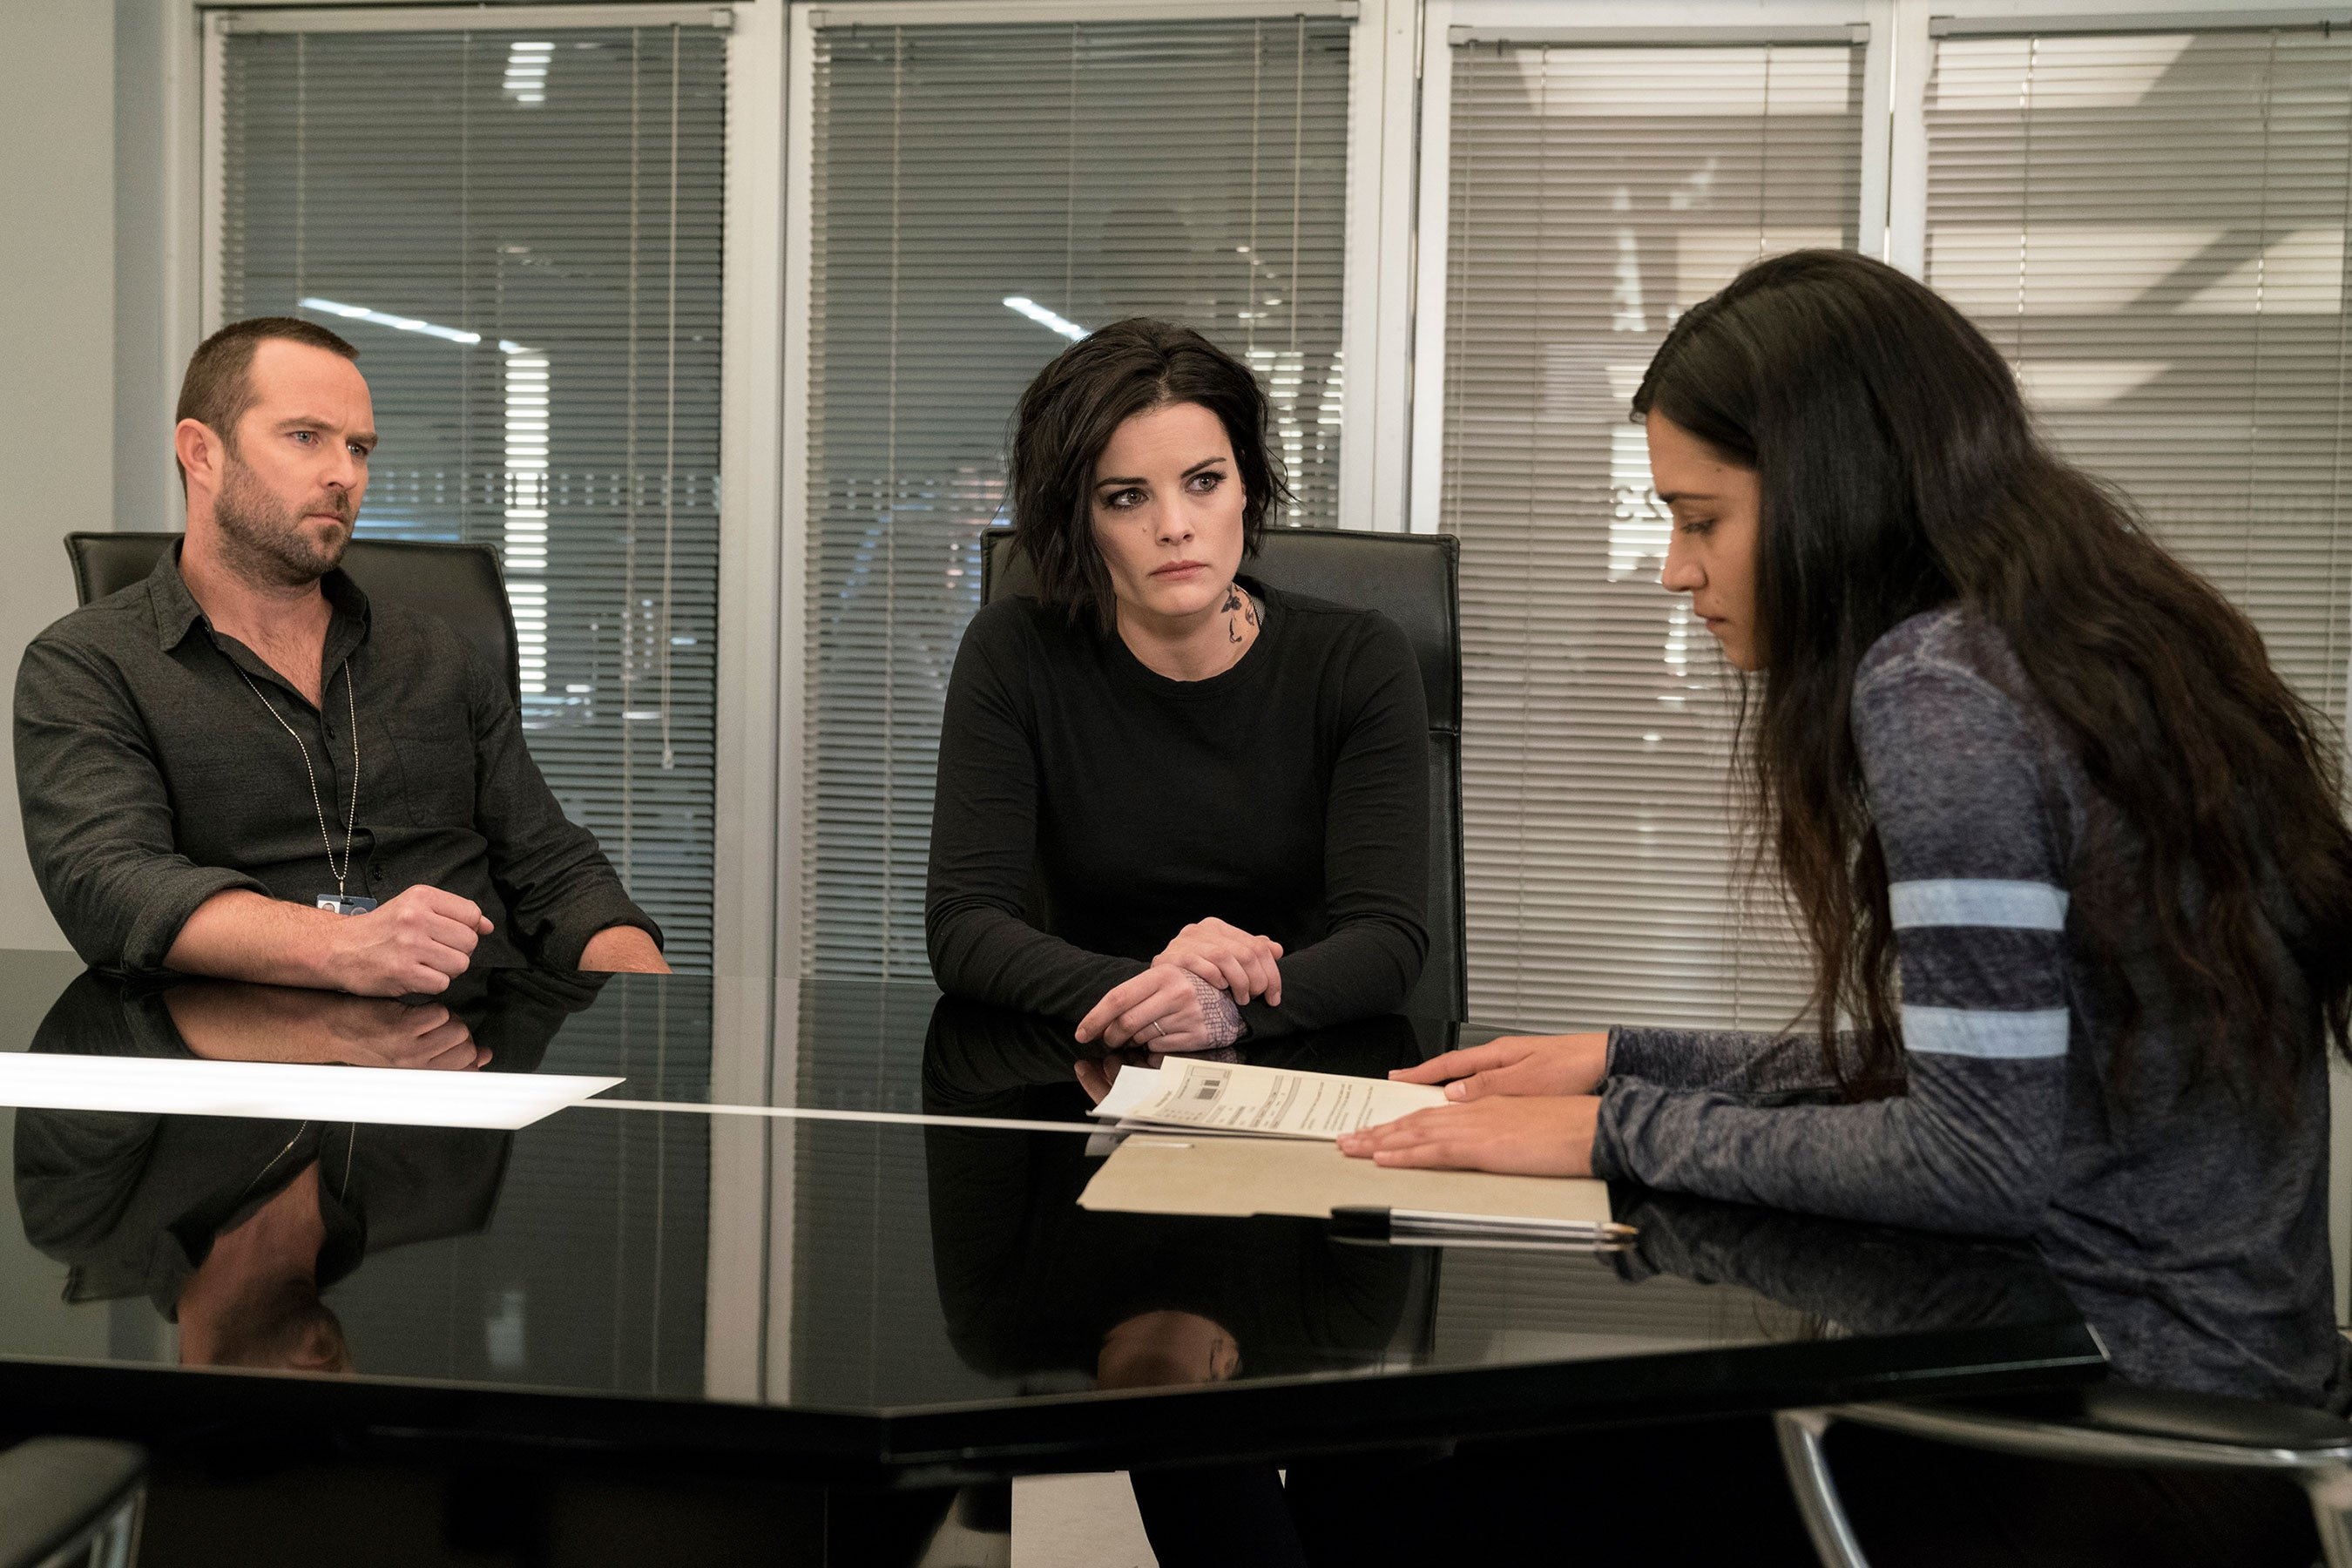 Blindspot: New twist revealed about Avery's father